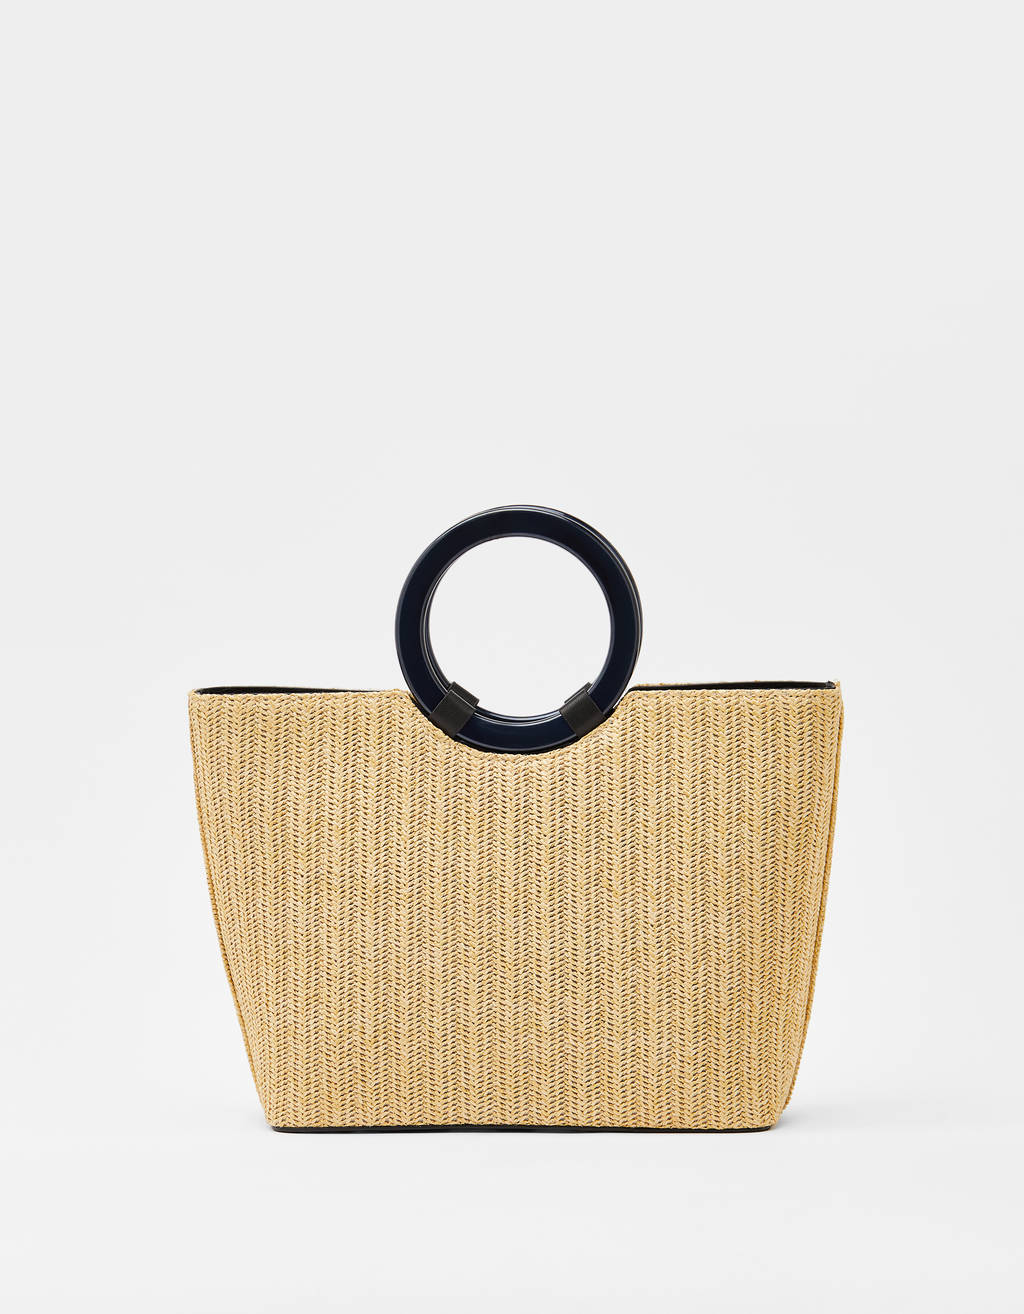 Straw bag with round handles